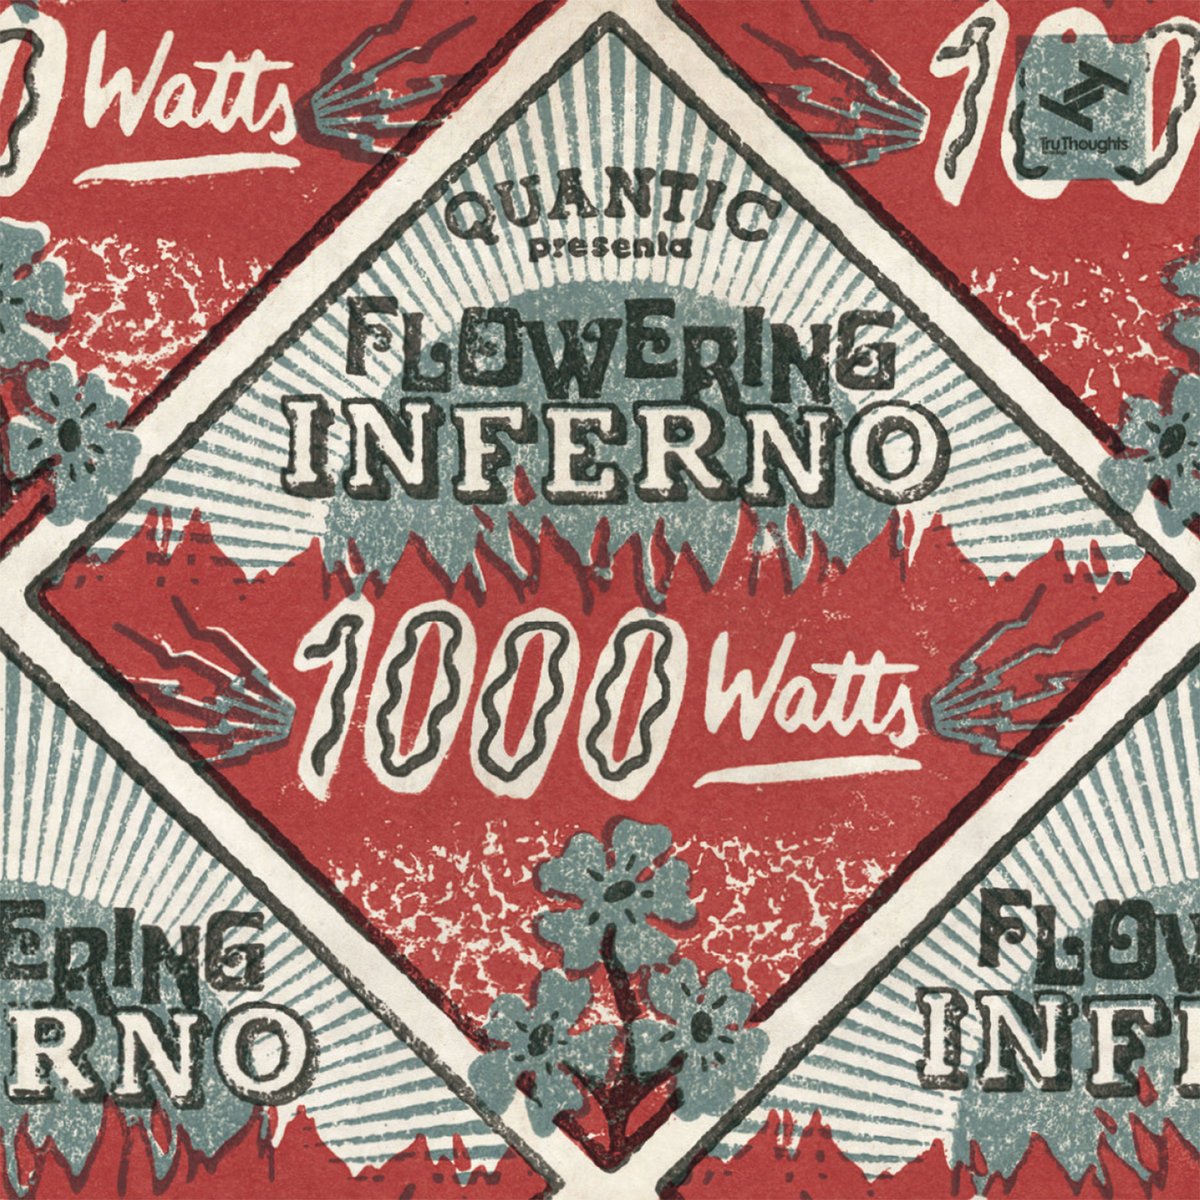 (QUANTIC presents) FLOWERING INFERNO – 1000 Watts